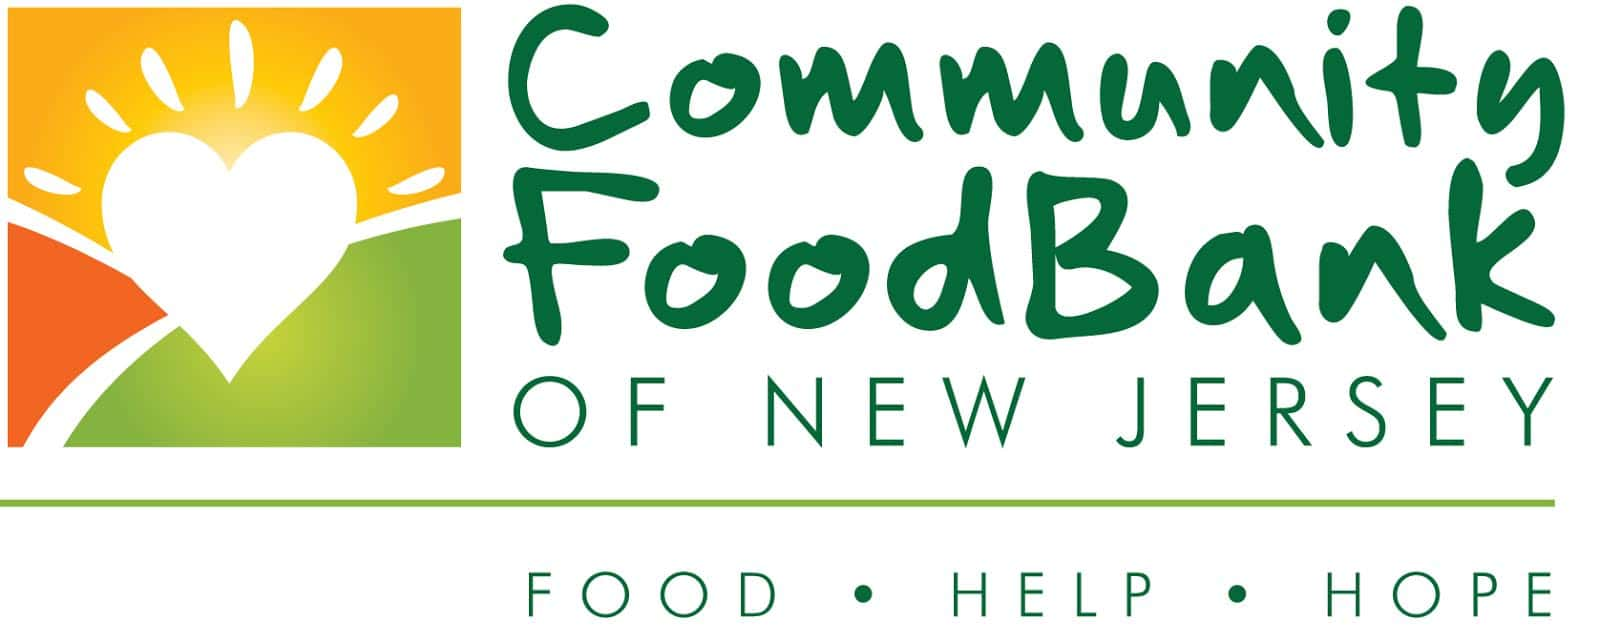 Community Food Bank Of New Jersey Email